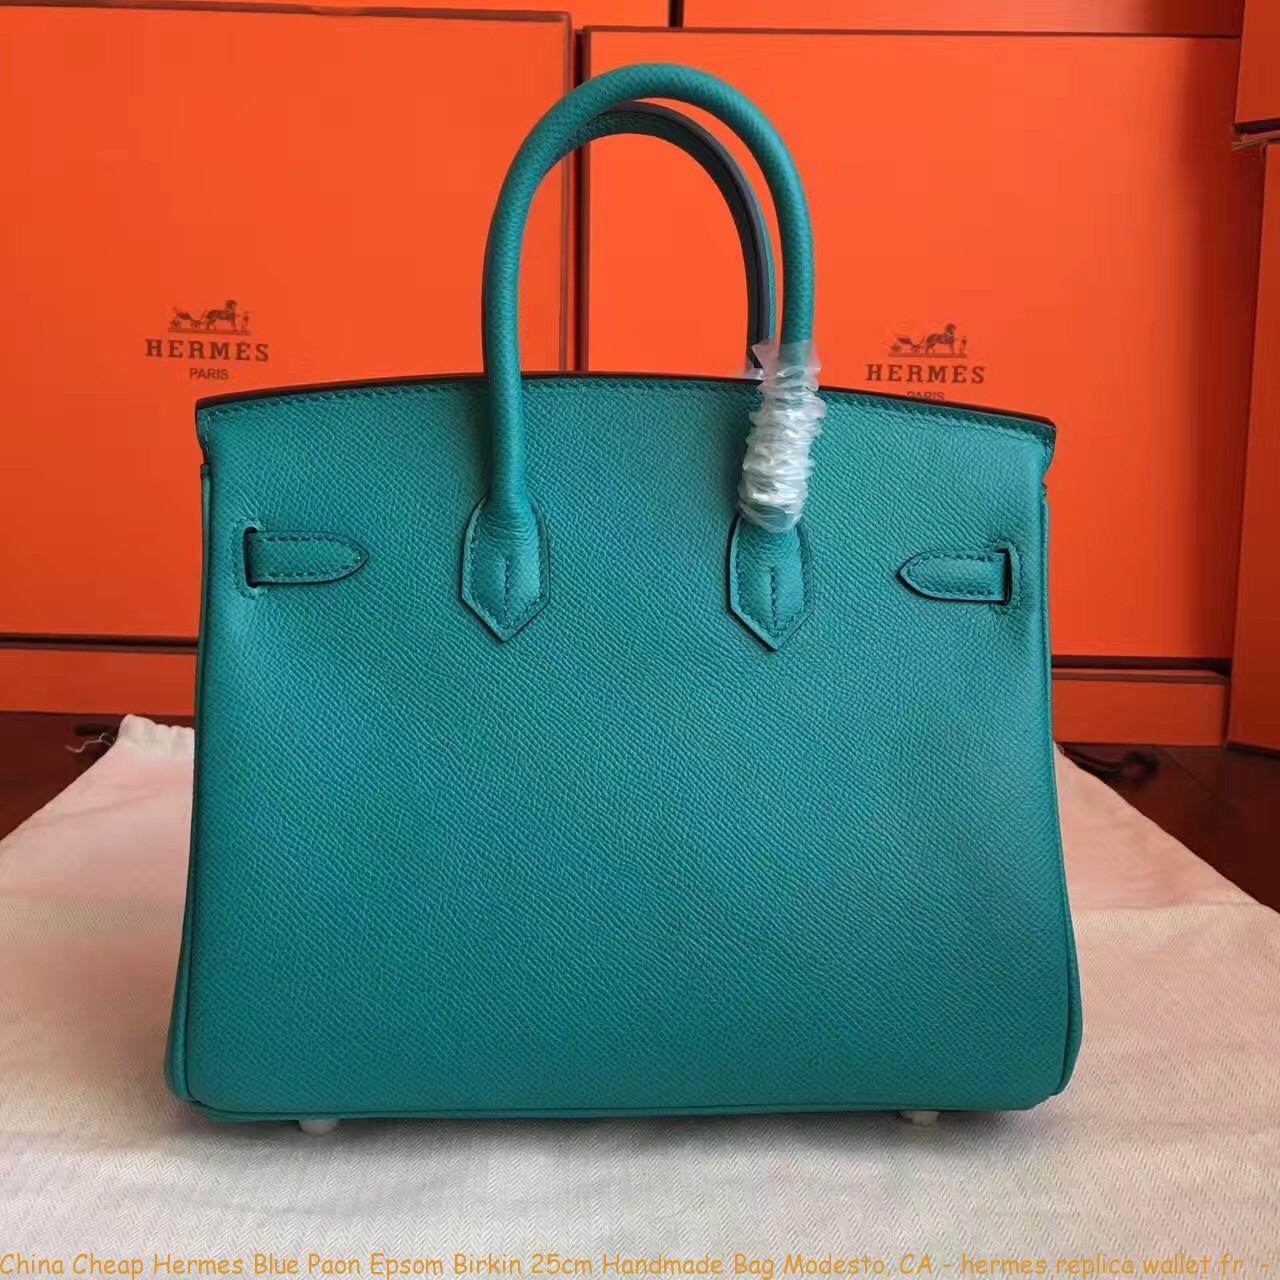 7ae6cd5af2 China Cheap Hermes Blue Paon Epsom Birkin 25cm Handmade Bag Modesto ...